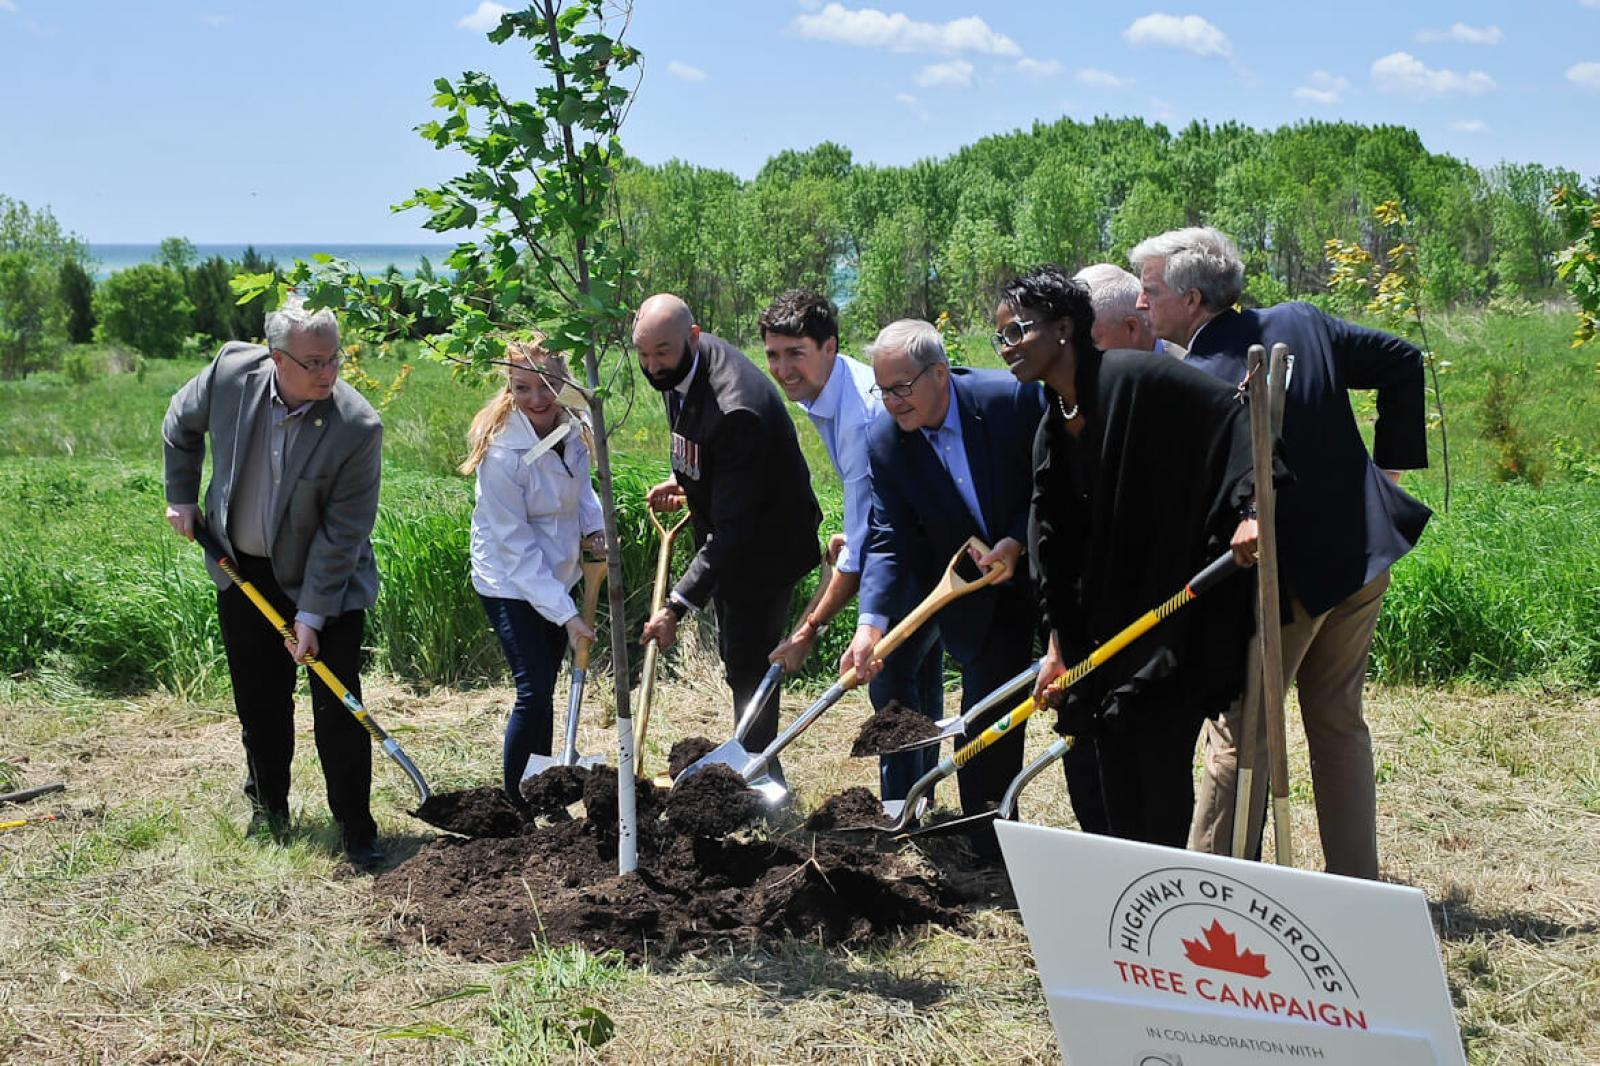 Prime Minister Justin Trudeau was joined by numerous special guests for a ceremonial tree planting.